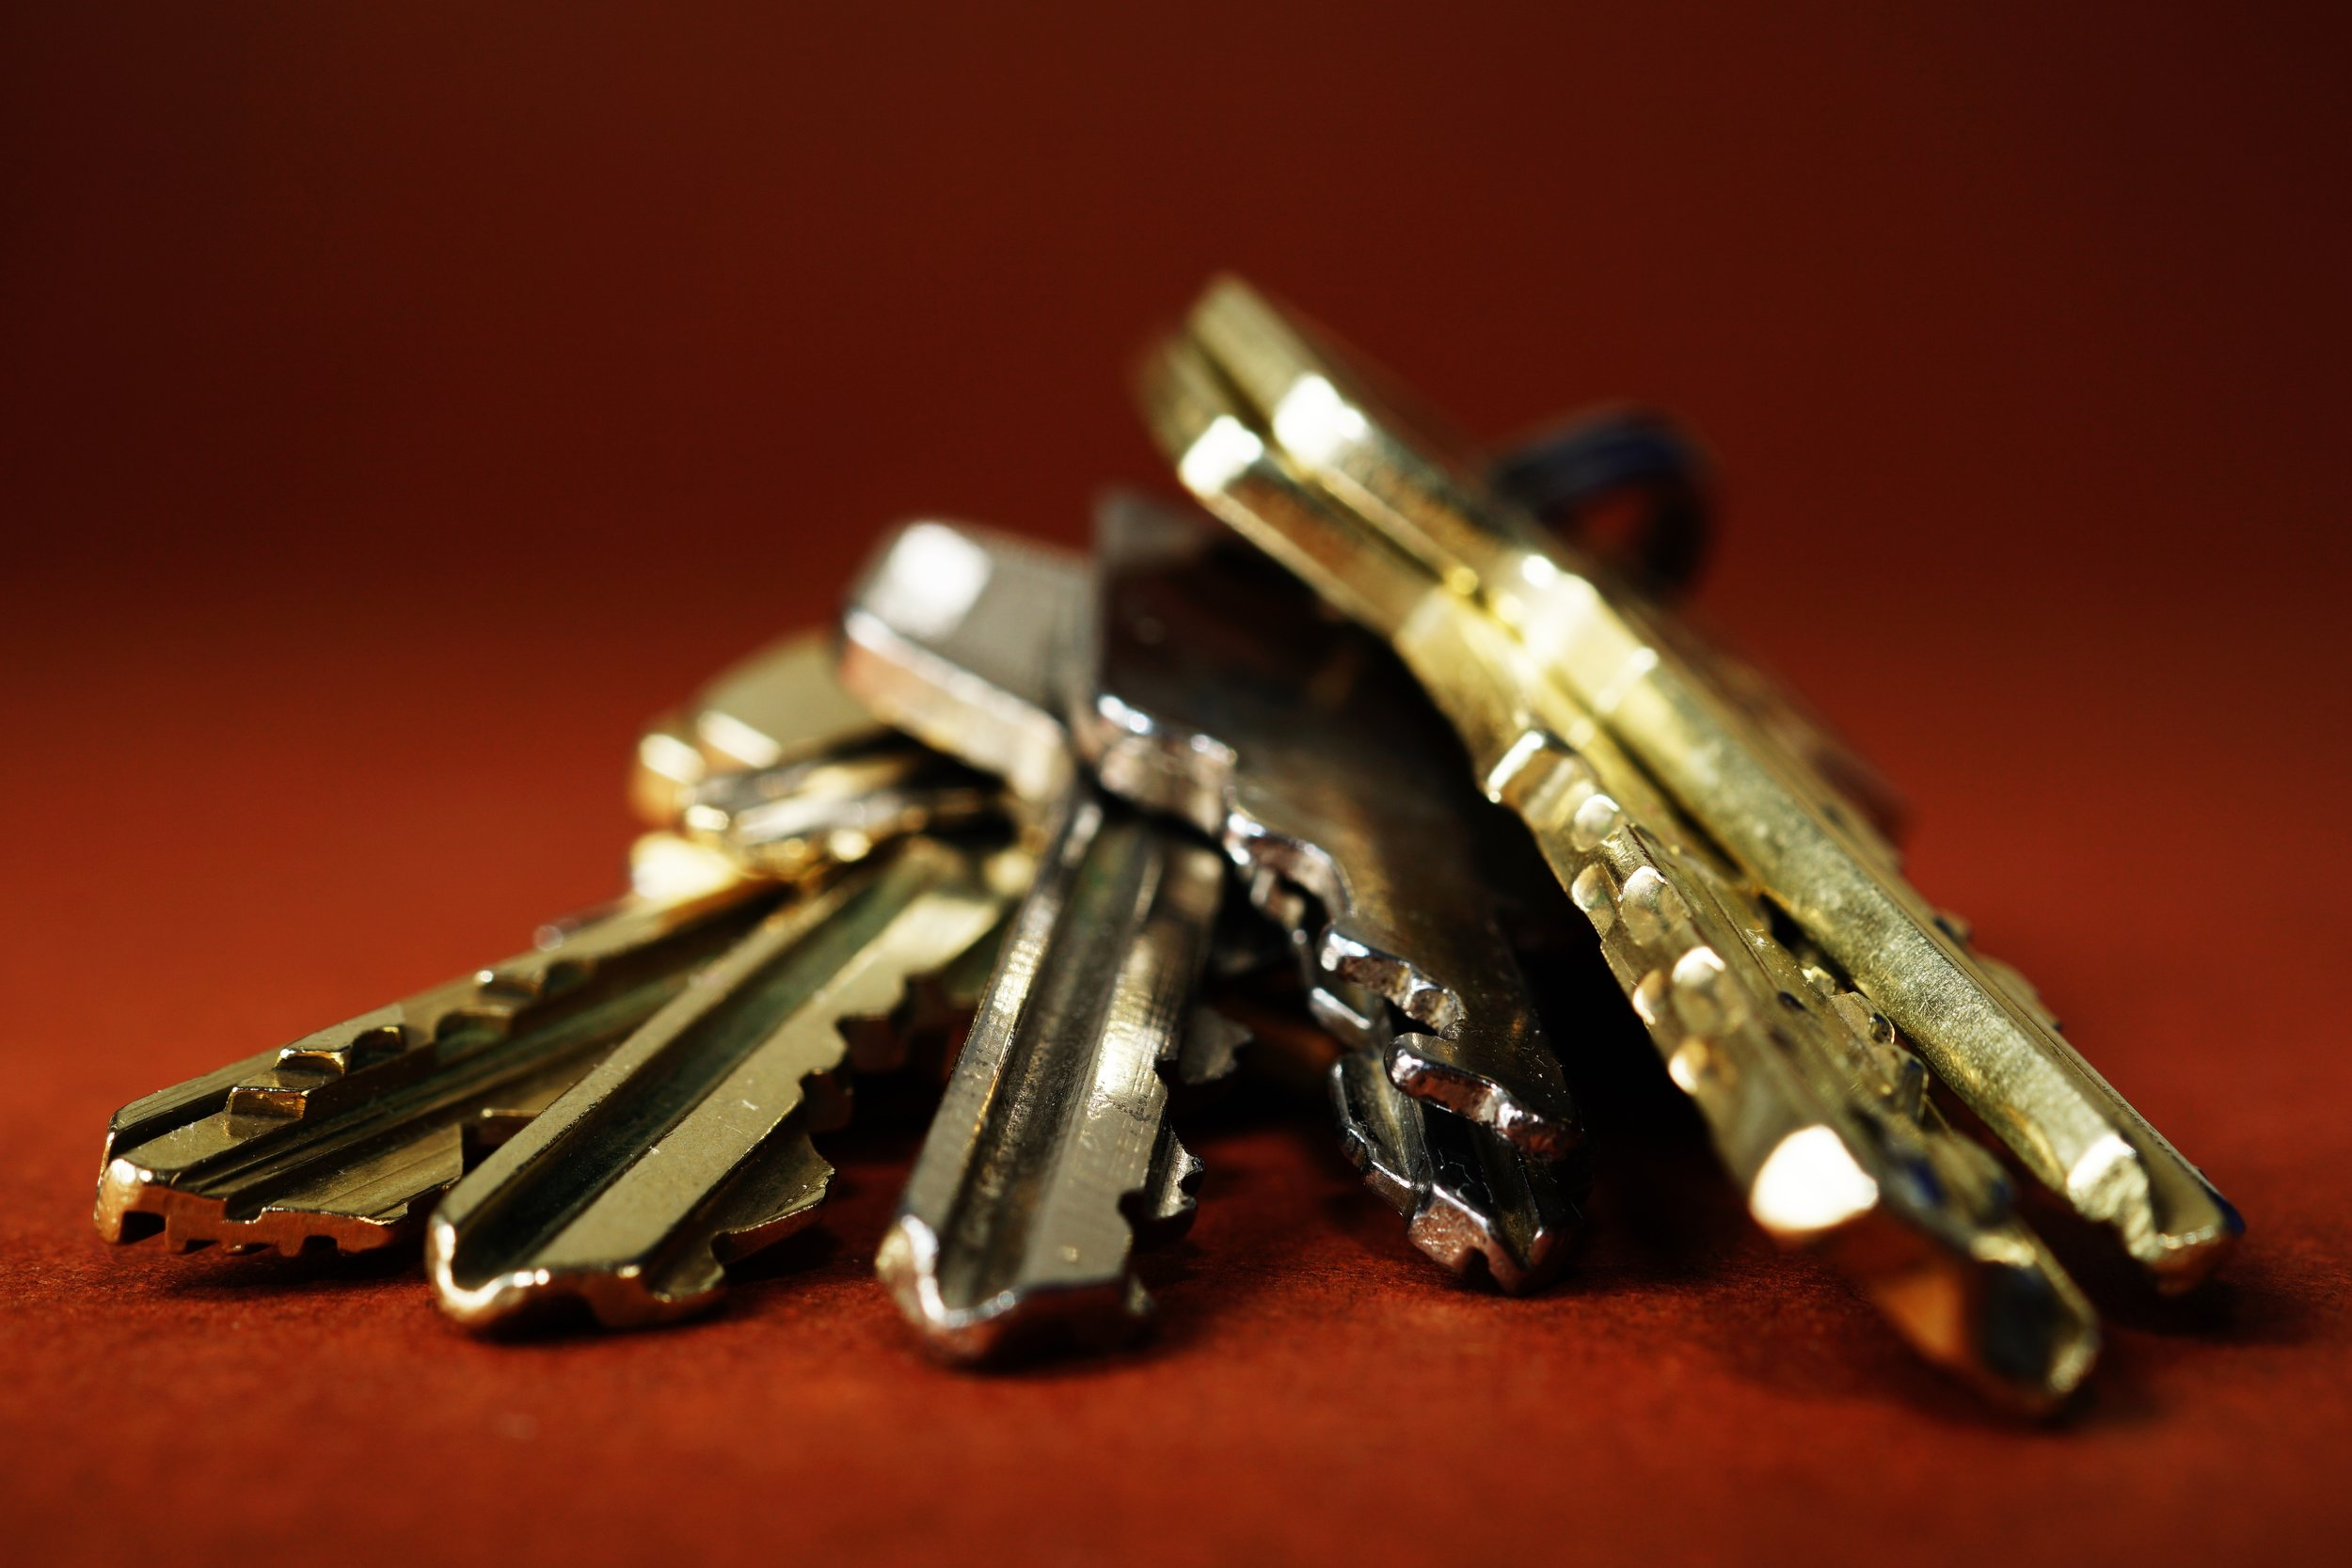 close-up-keys-metal-333838.jpg